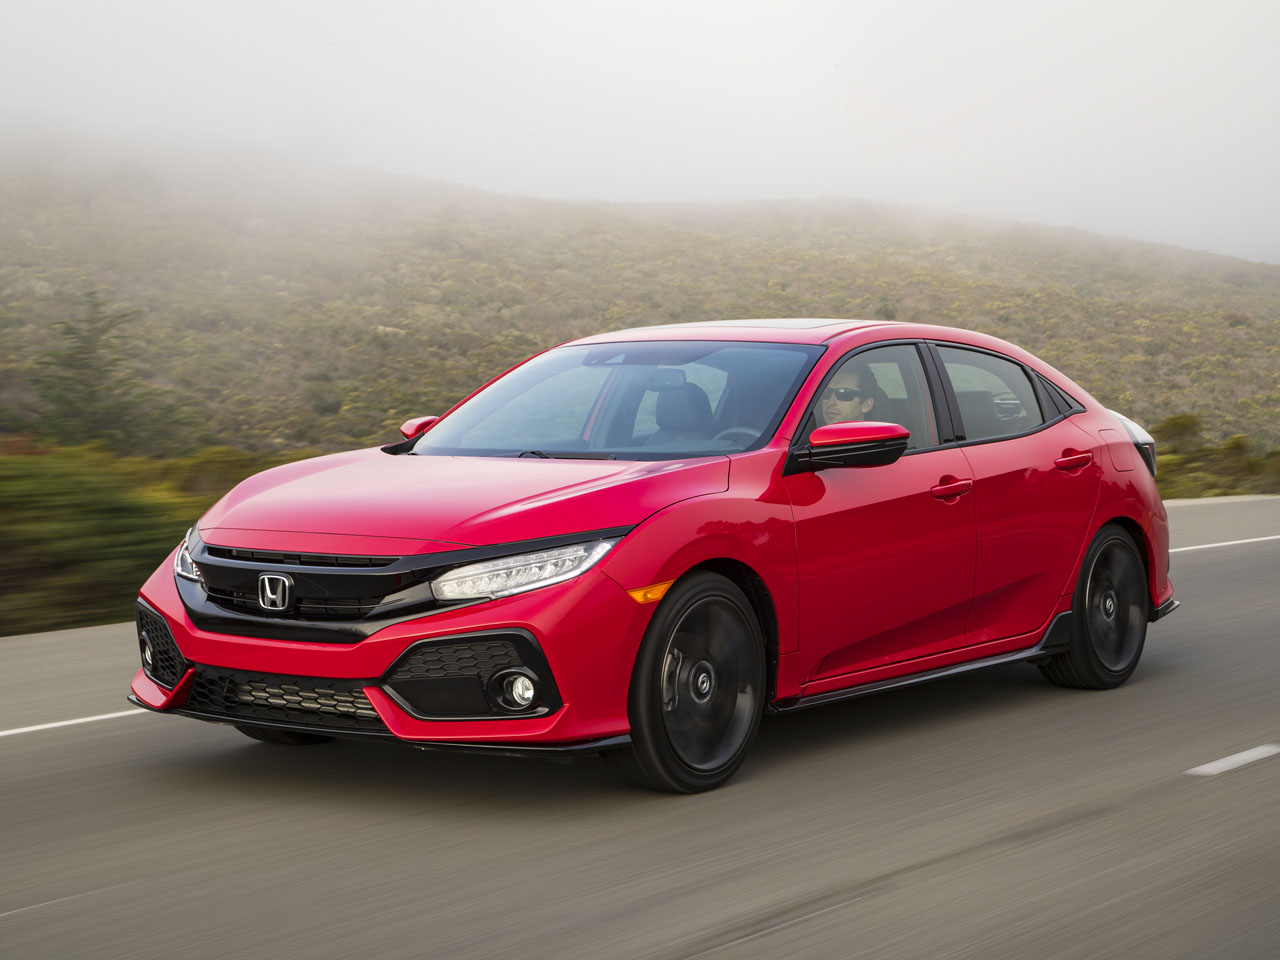 2017 Honda Civic Hatchback Road Test Review